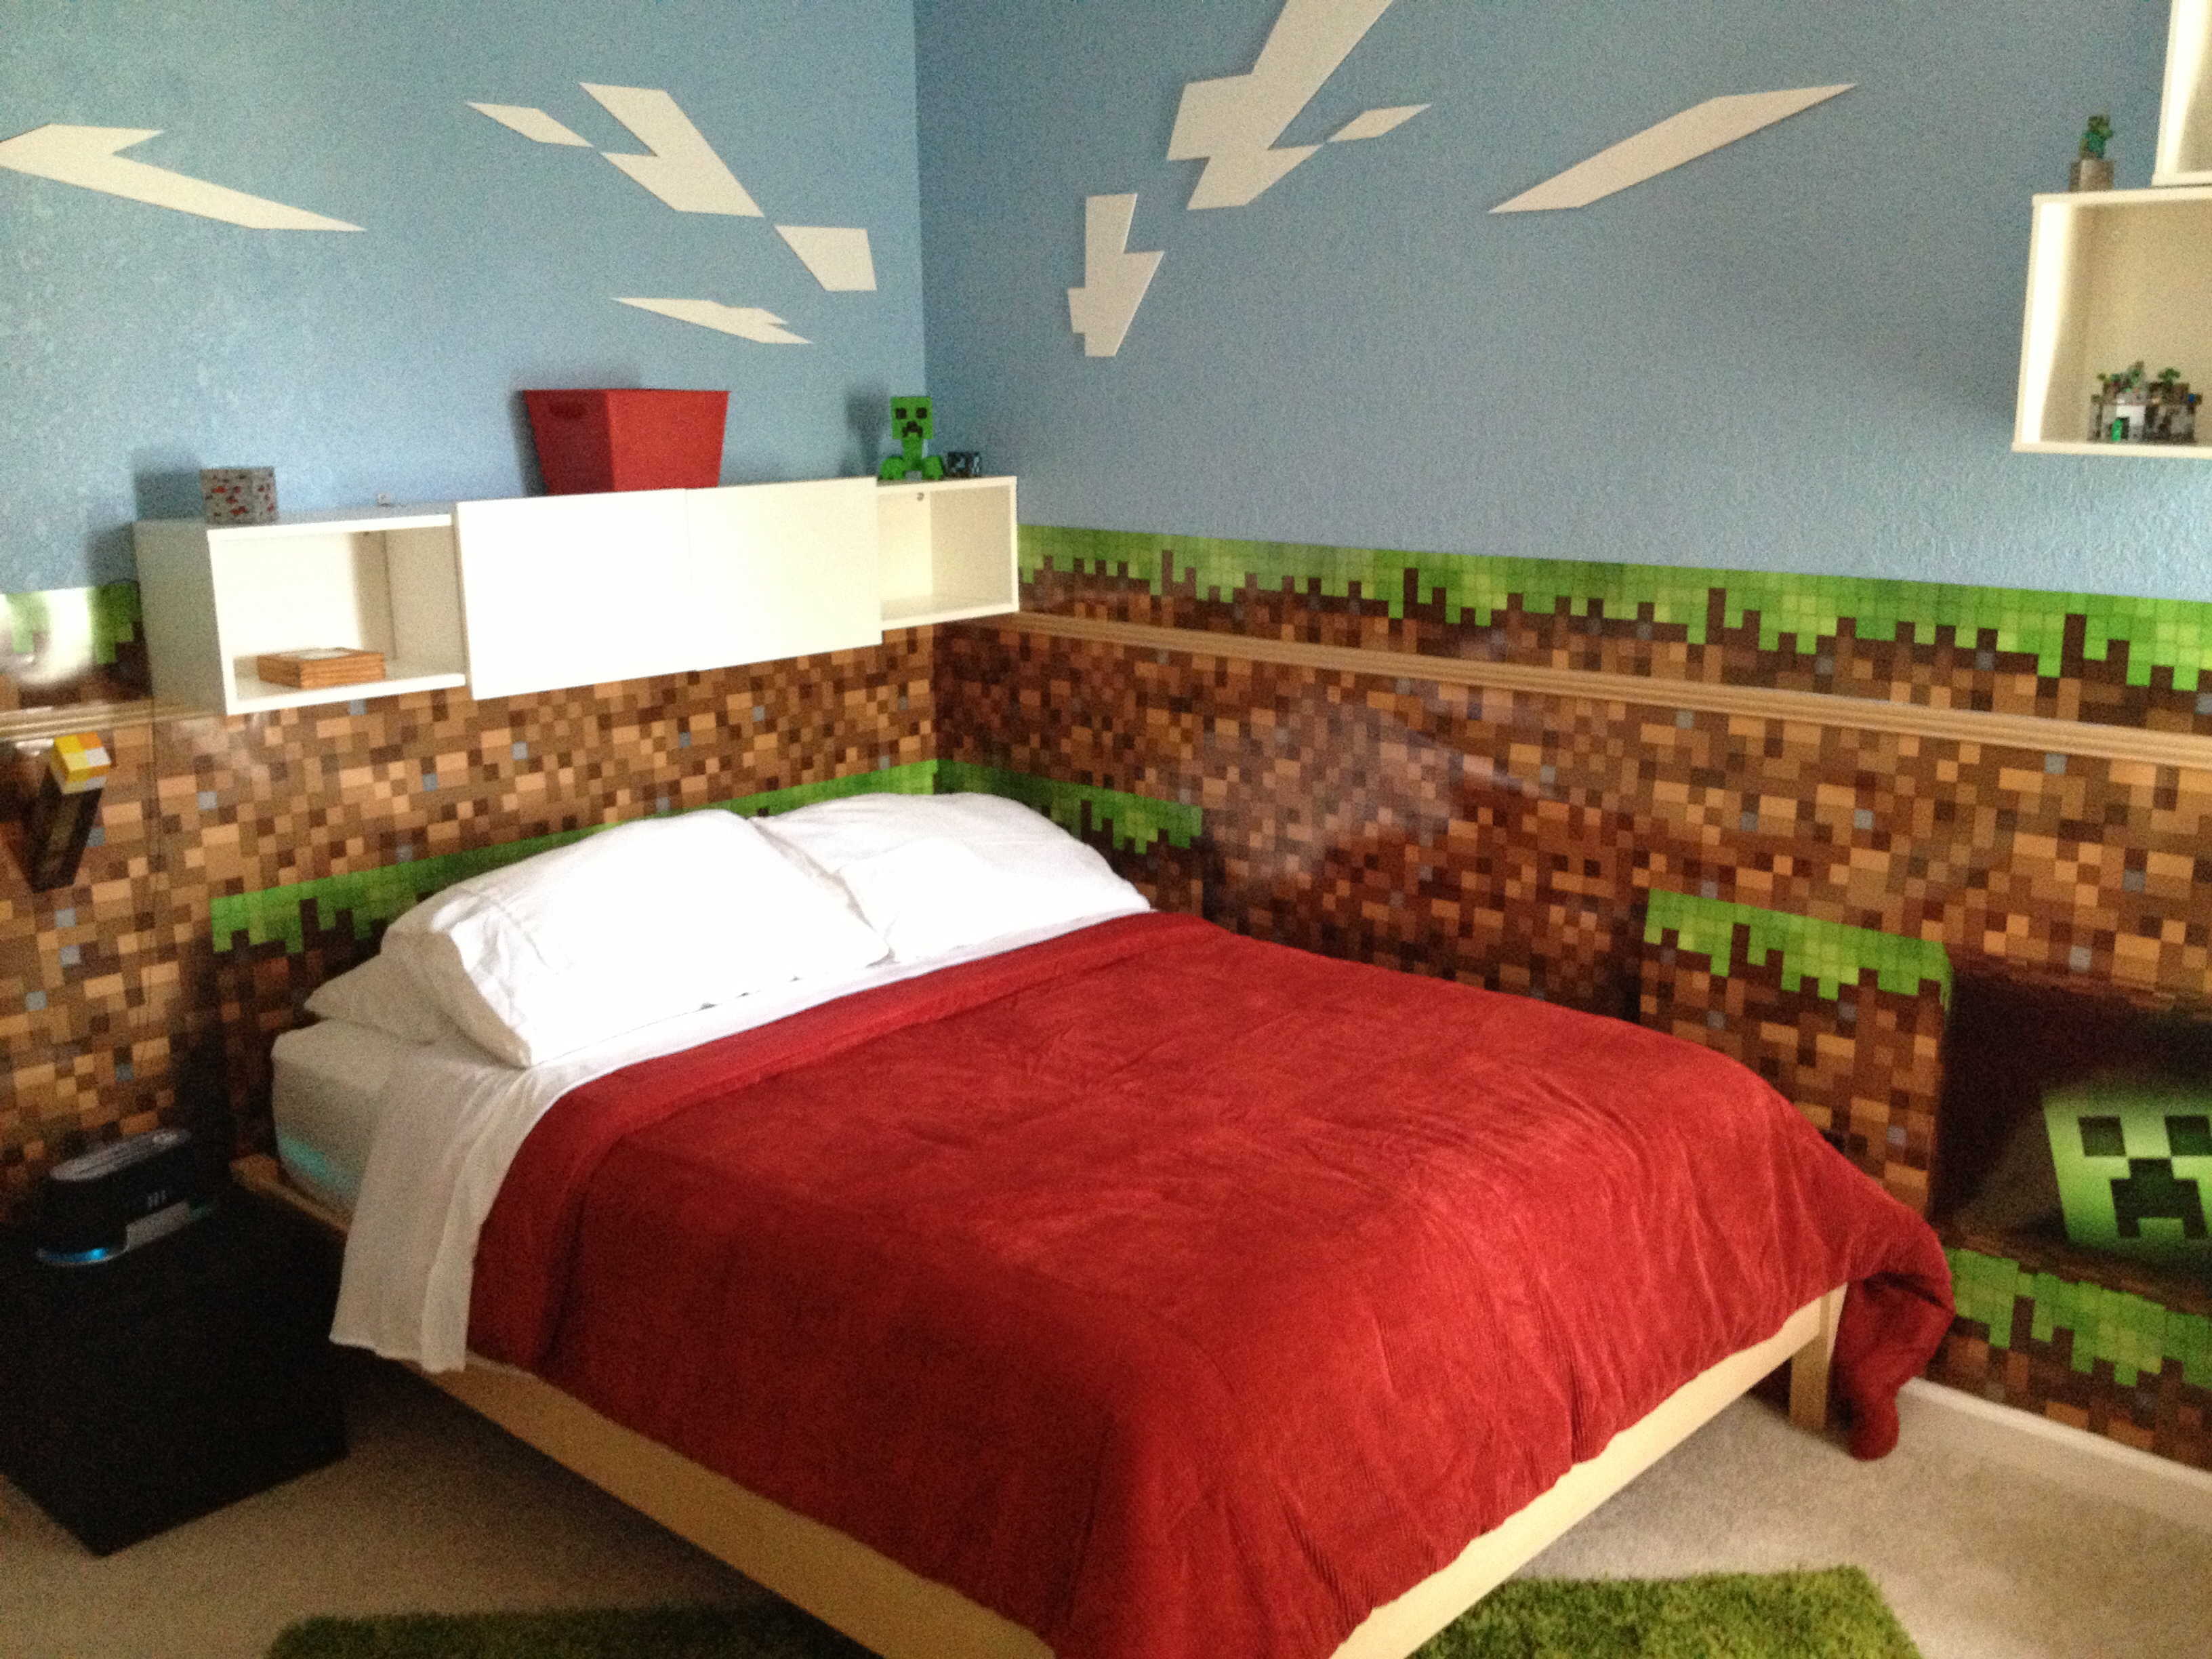 Amazing minecraft bedroom decor ideas mind food for Amazing bedroom ideas